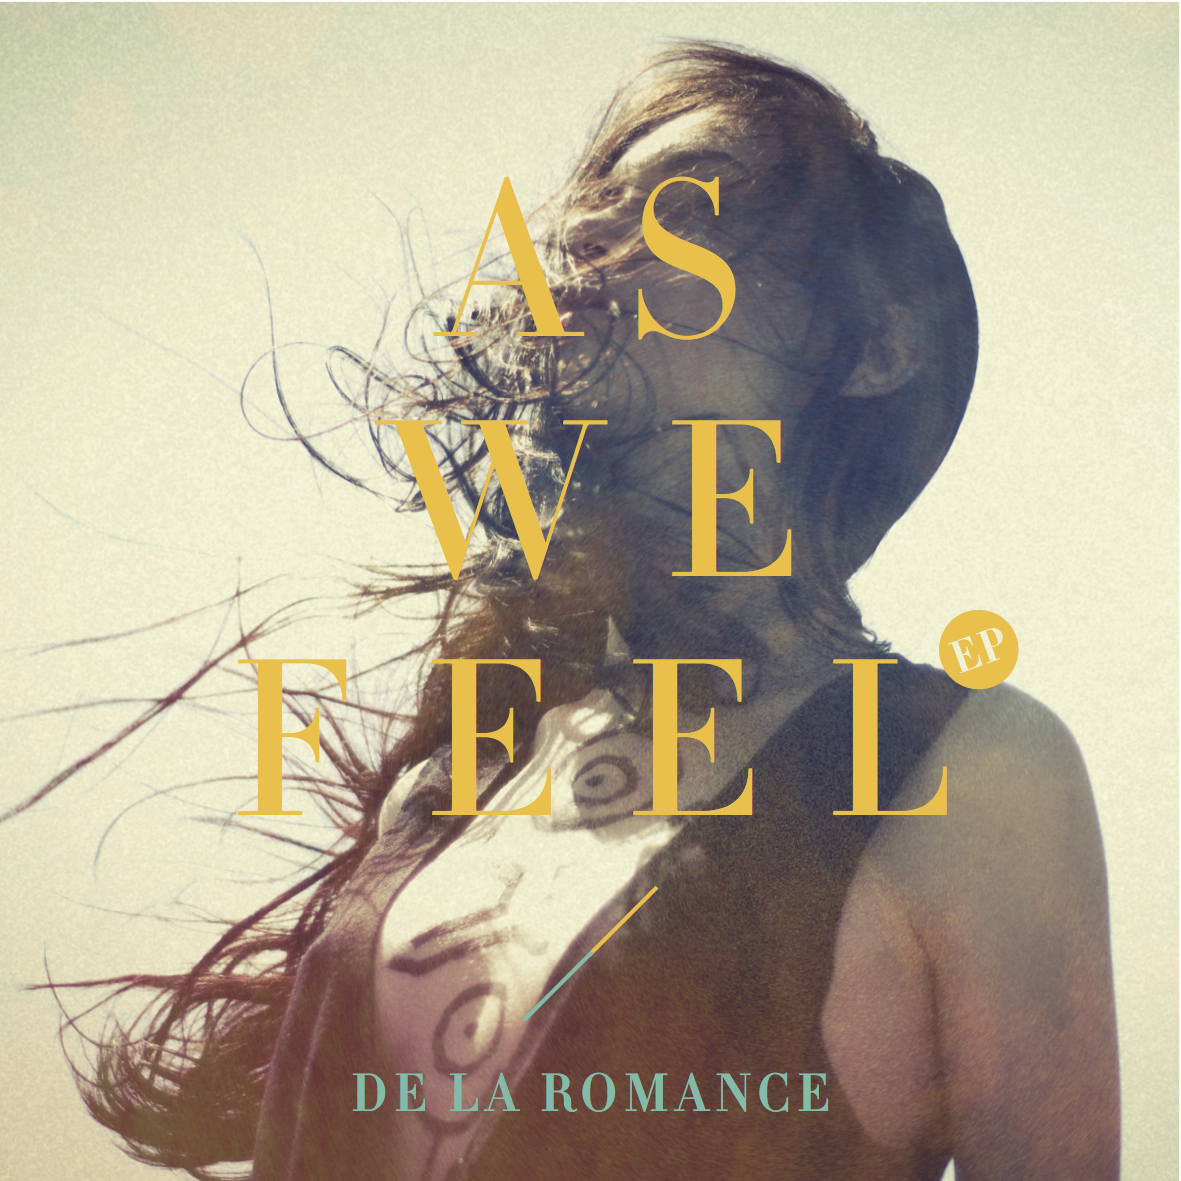 DE LA ROMANCE As we feel